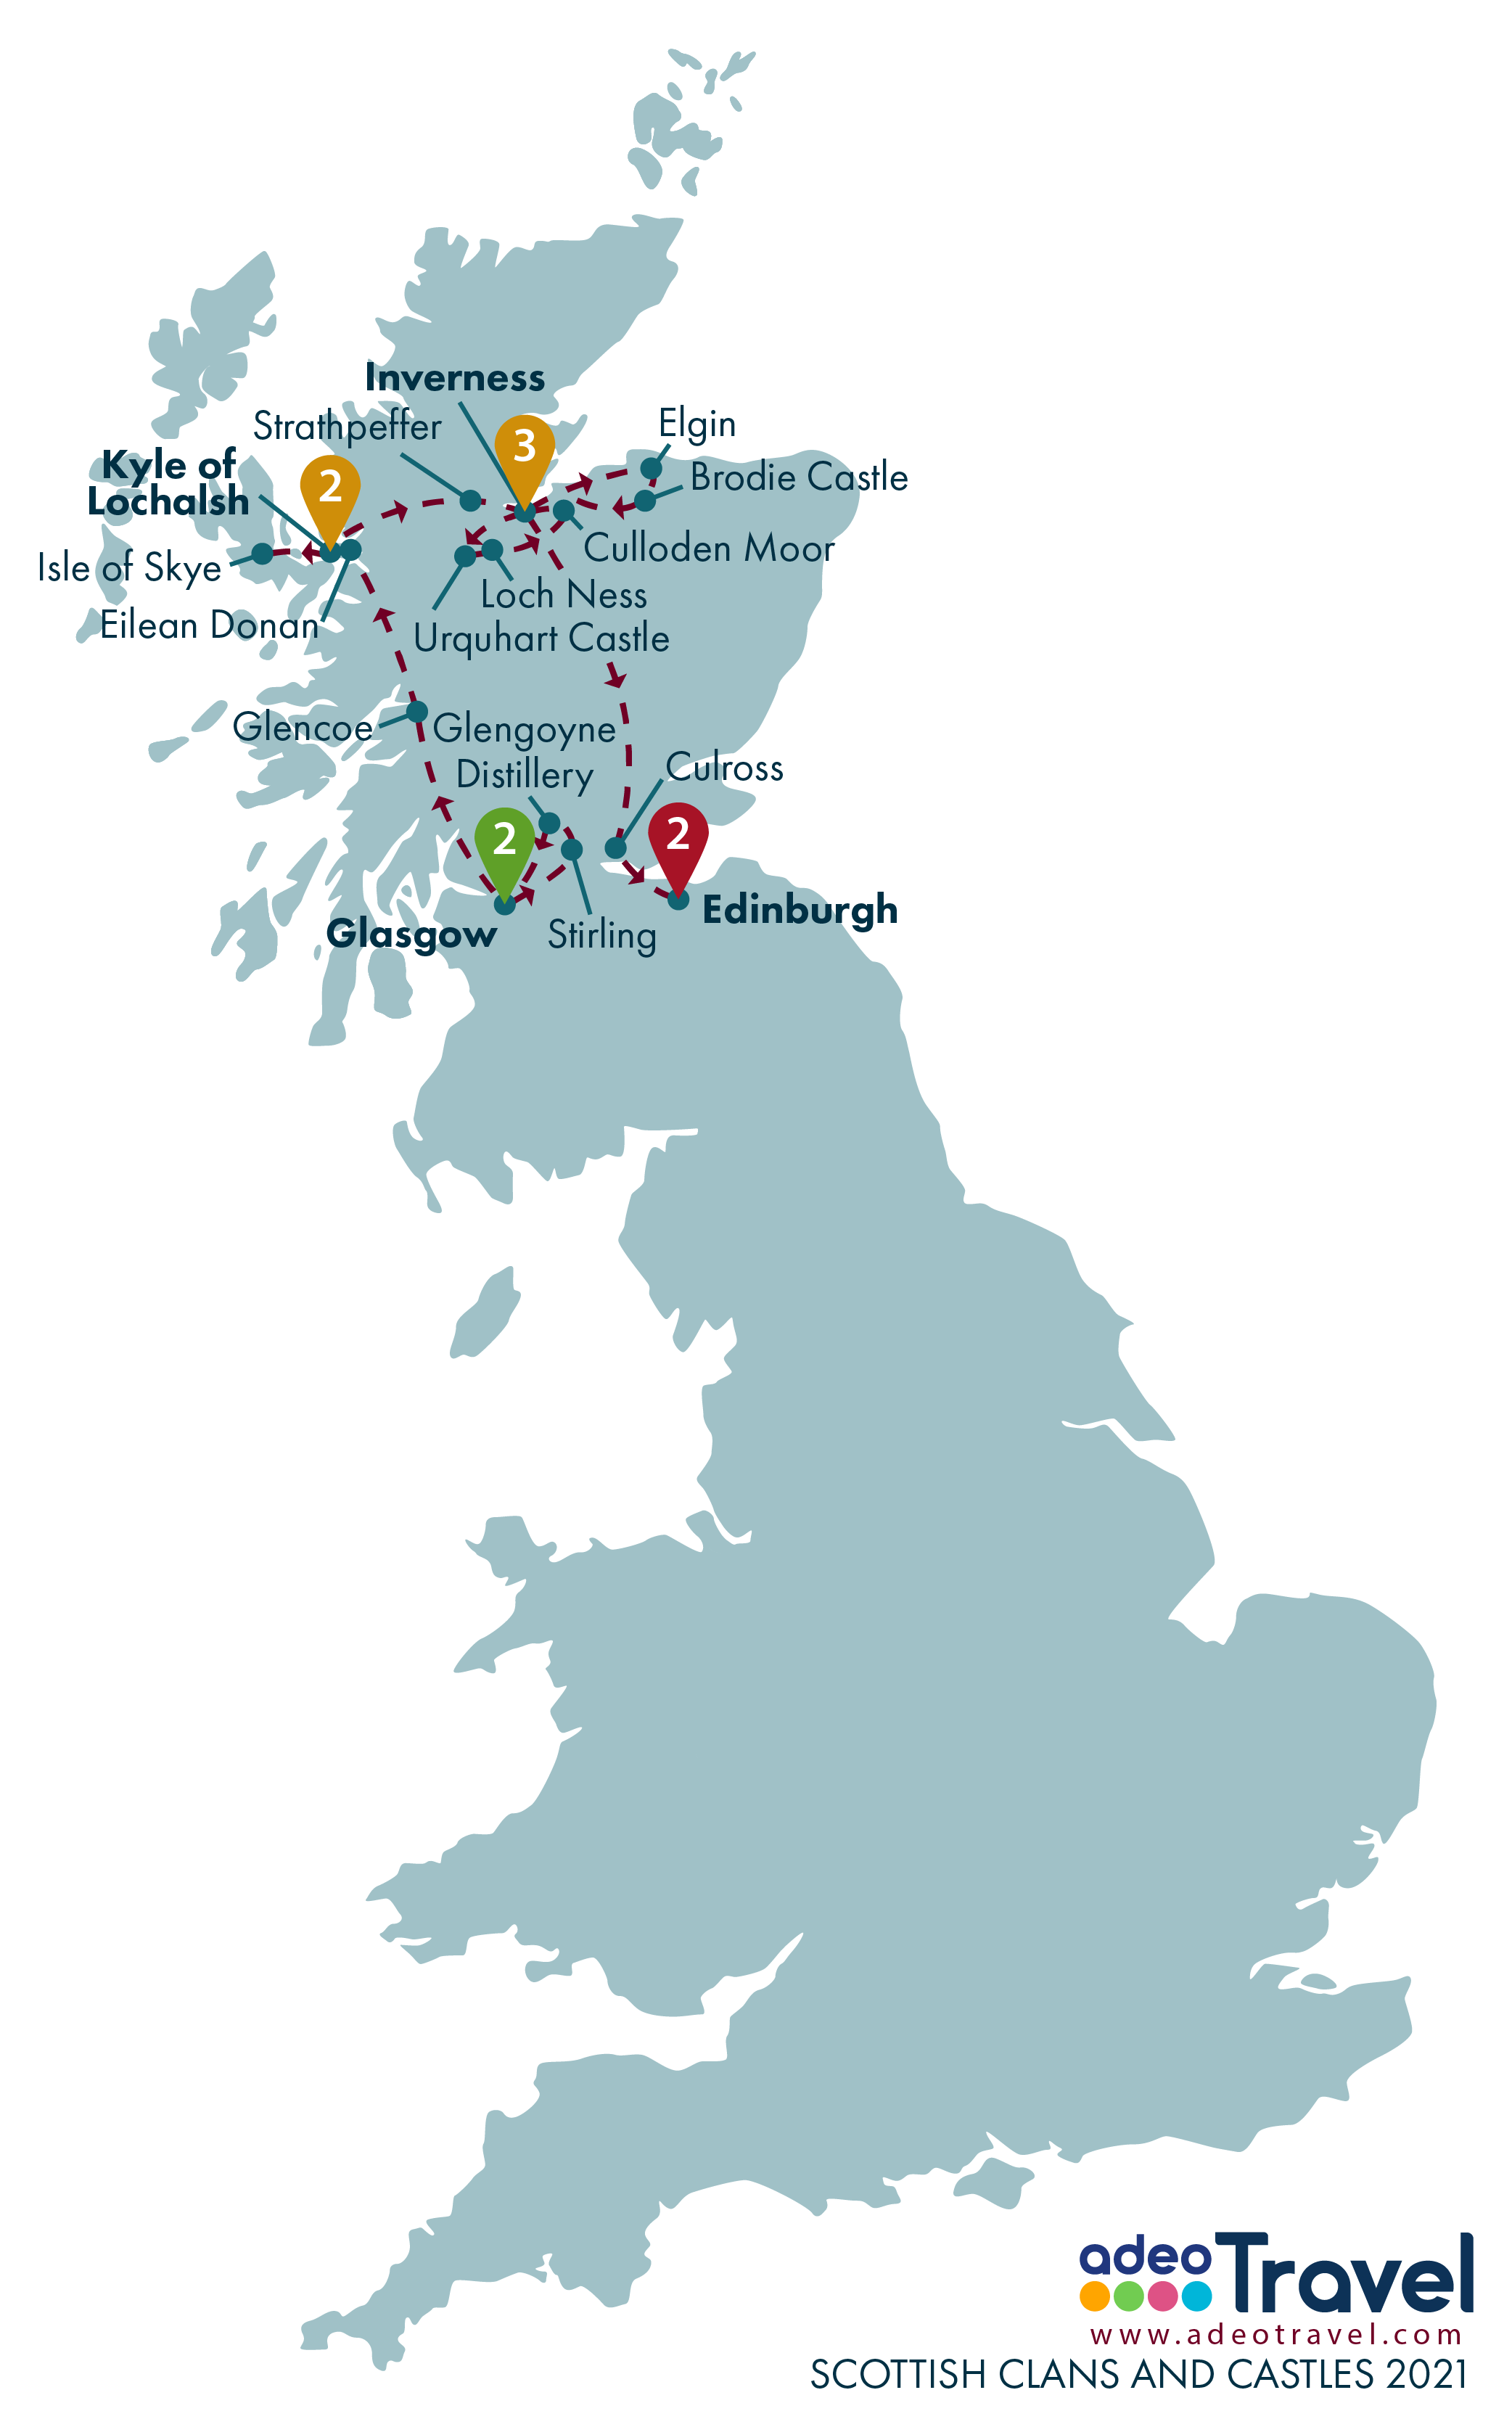 Map - Scottish Clans and Castles 2021